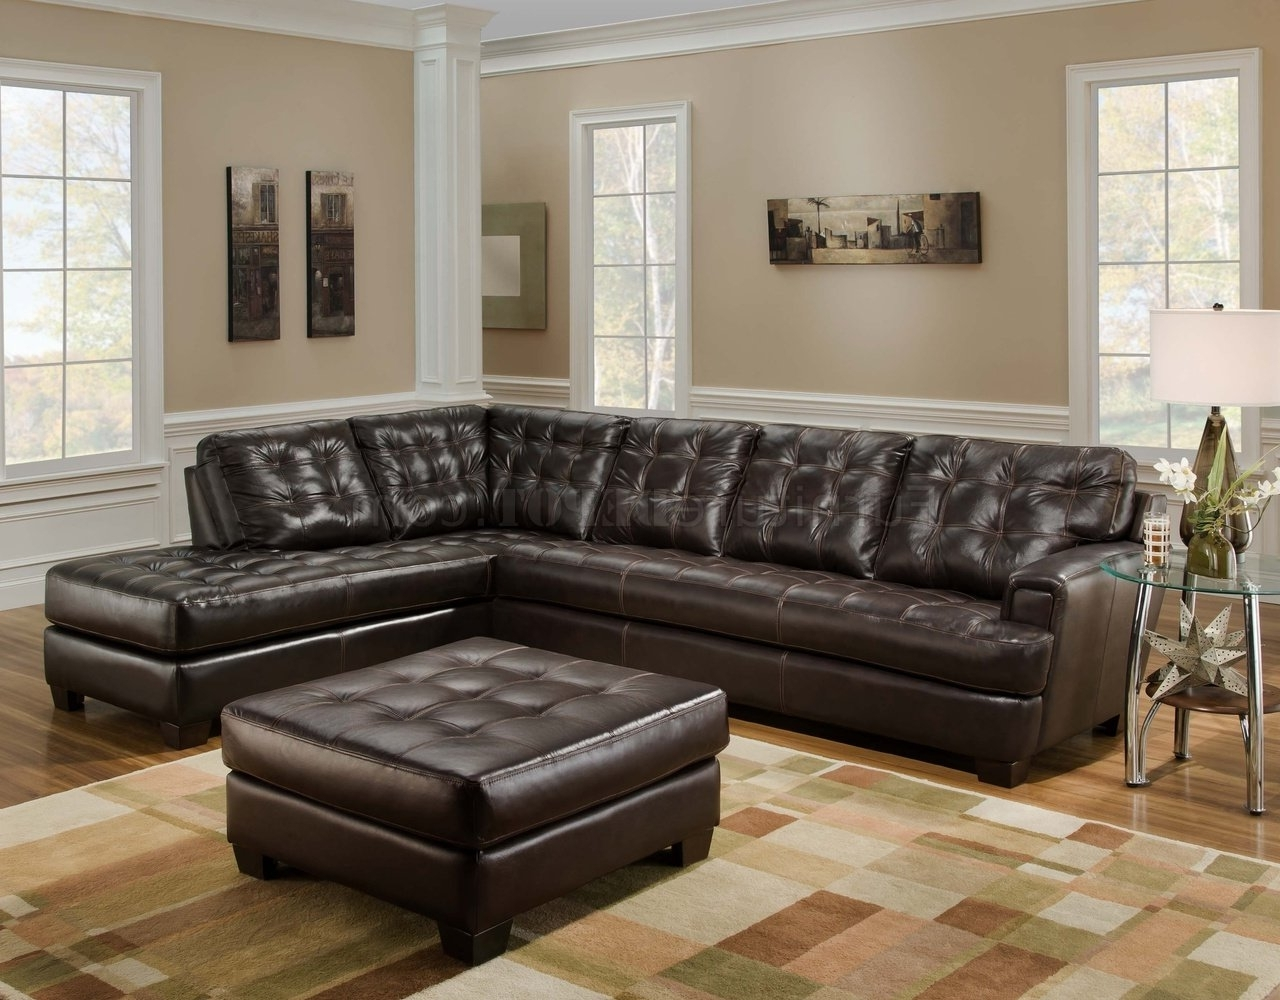 Brown Leather Sectionals With Chaise With Regard To 2017 Chicory Brown Tufted Top Grain Leather Modern Sectional Sofa (View 6 of 15)